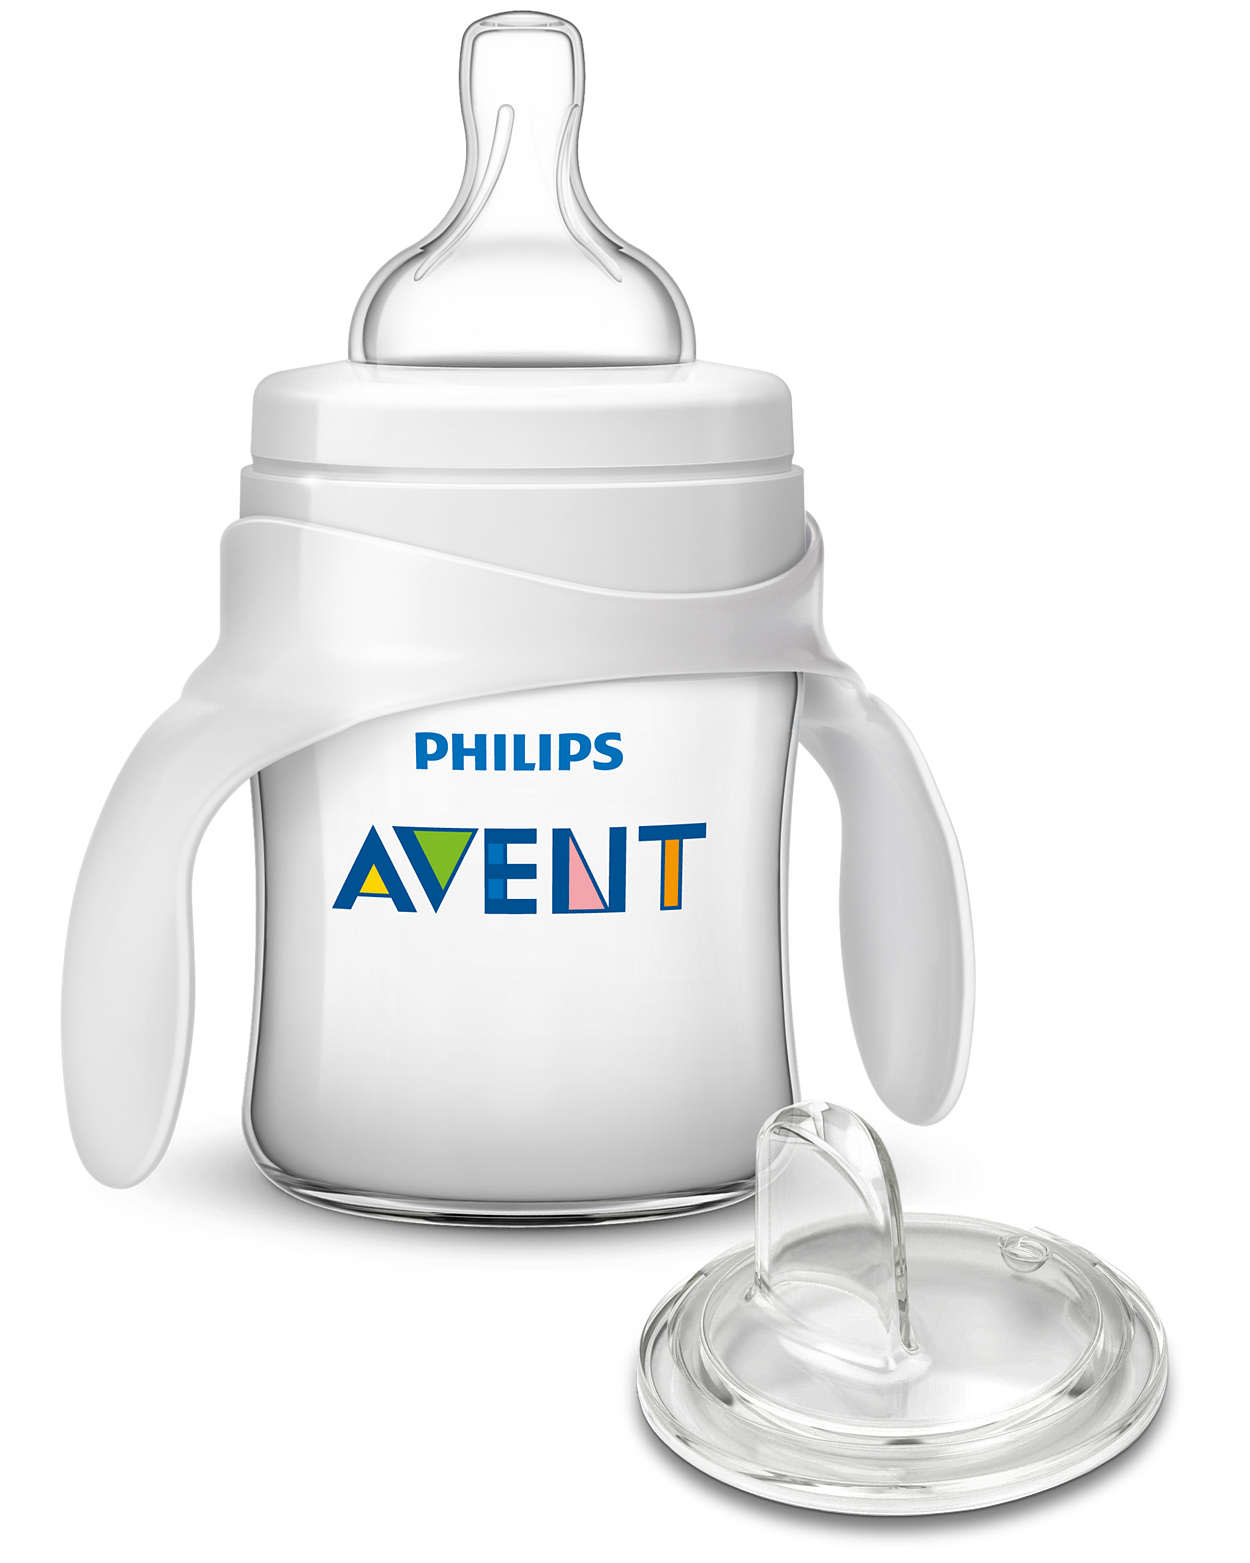 Avent AVENT My First Transition Cup